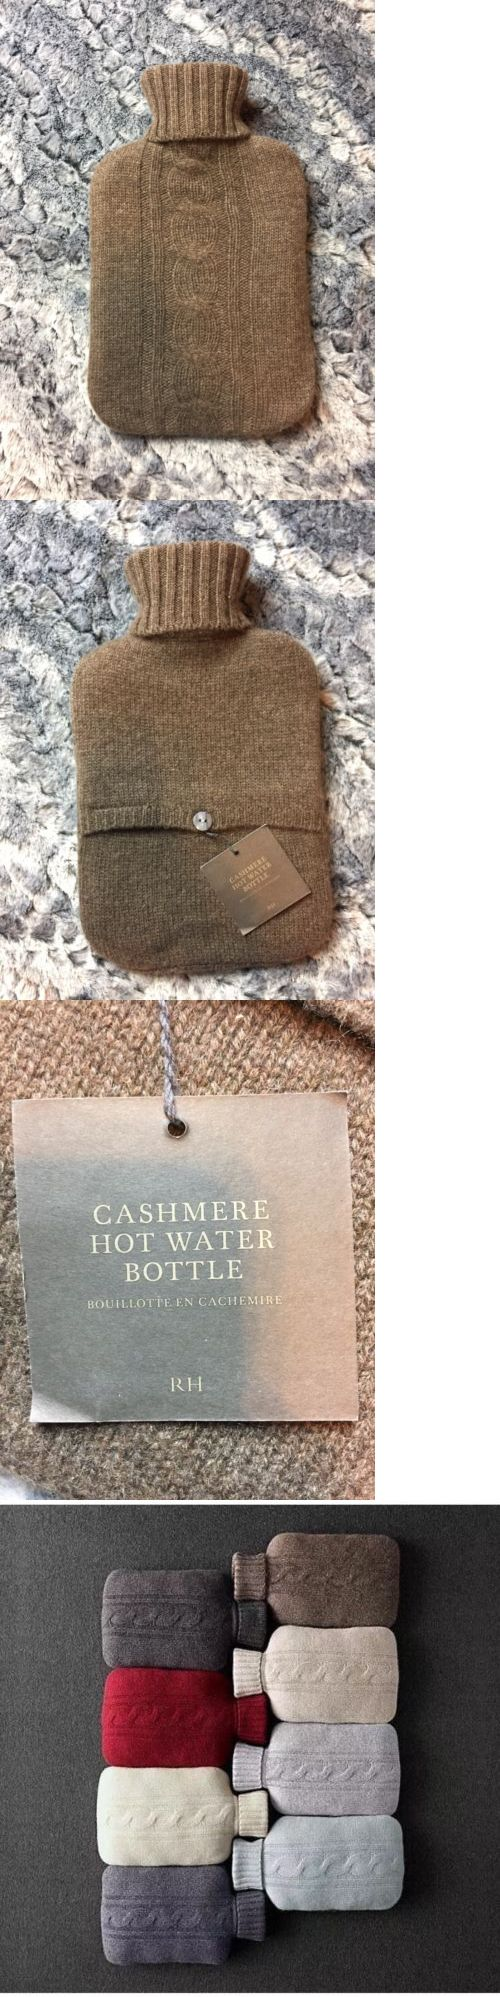 Hot Water Bottles and Covers: Nwt Restoration Hardware Cashmere Hot Water Bottle Chocolate Brown -> BUY IT NOW ONLY: $41.99 on eBay!